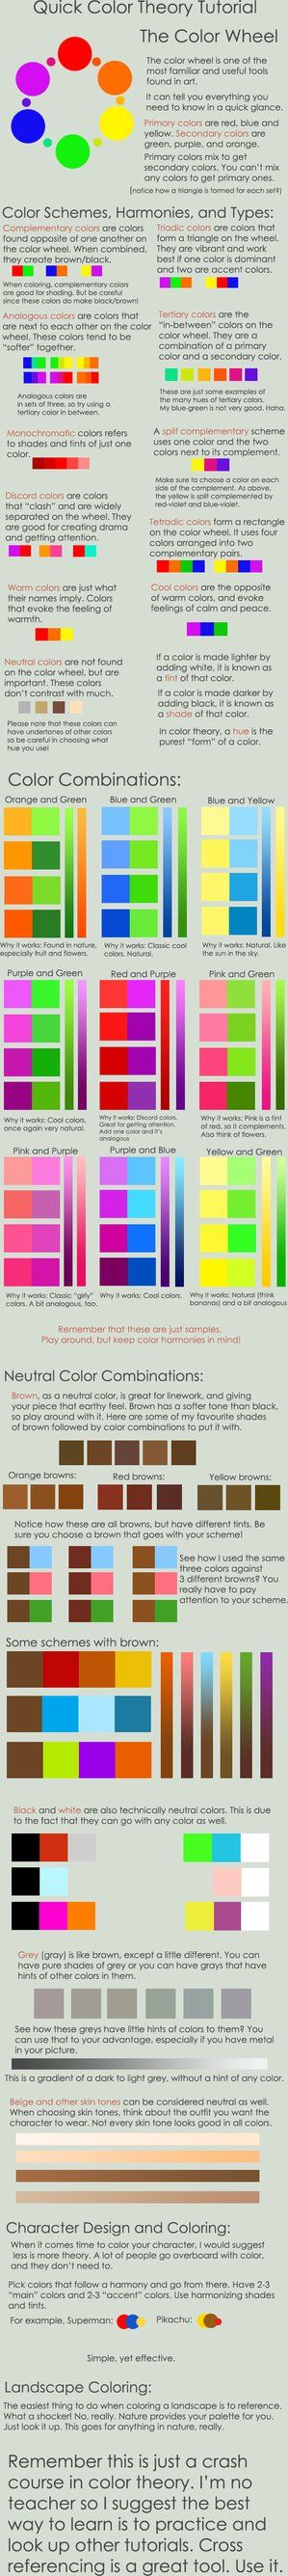 420 Best Magic Colors Images On Pinterest Rainbows Rainbow Click Here For Non Harmonized Colours Color Theory Crash Course By Pronouncedyou Deviantart